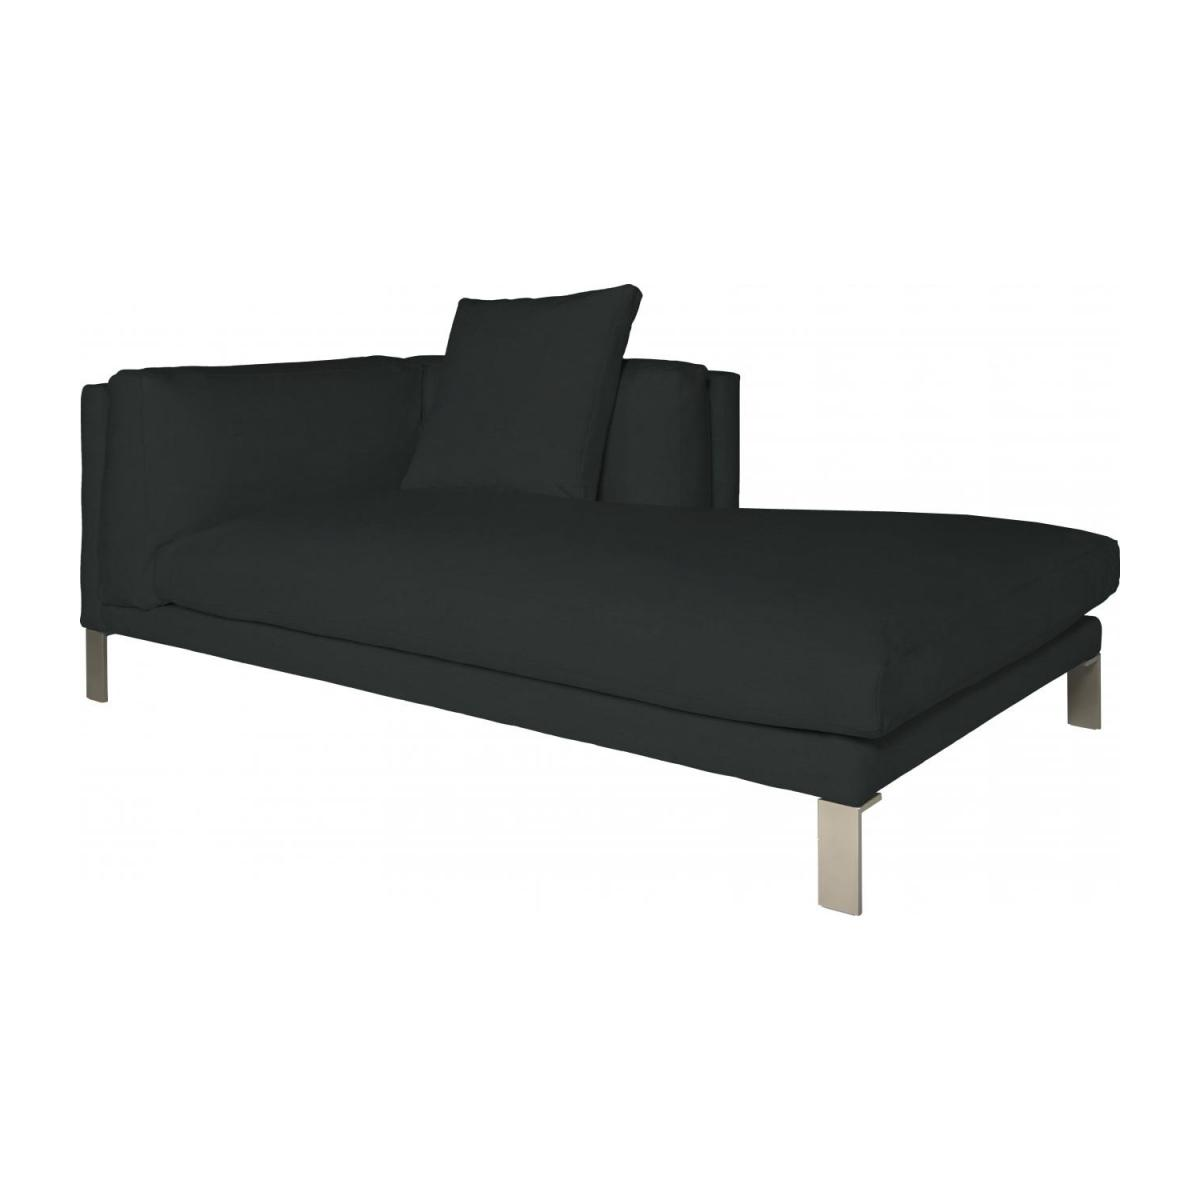 Leather right-arm chaise longue n°1